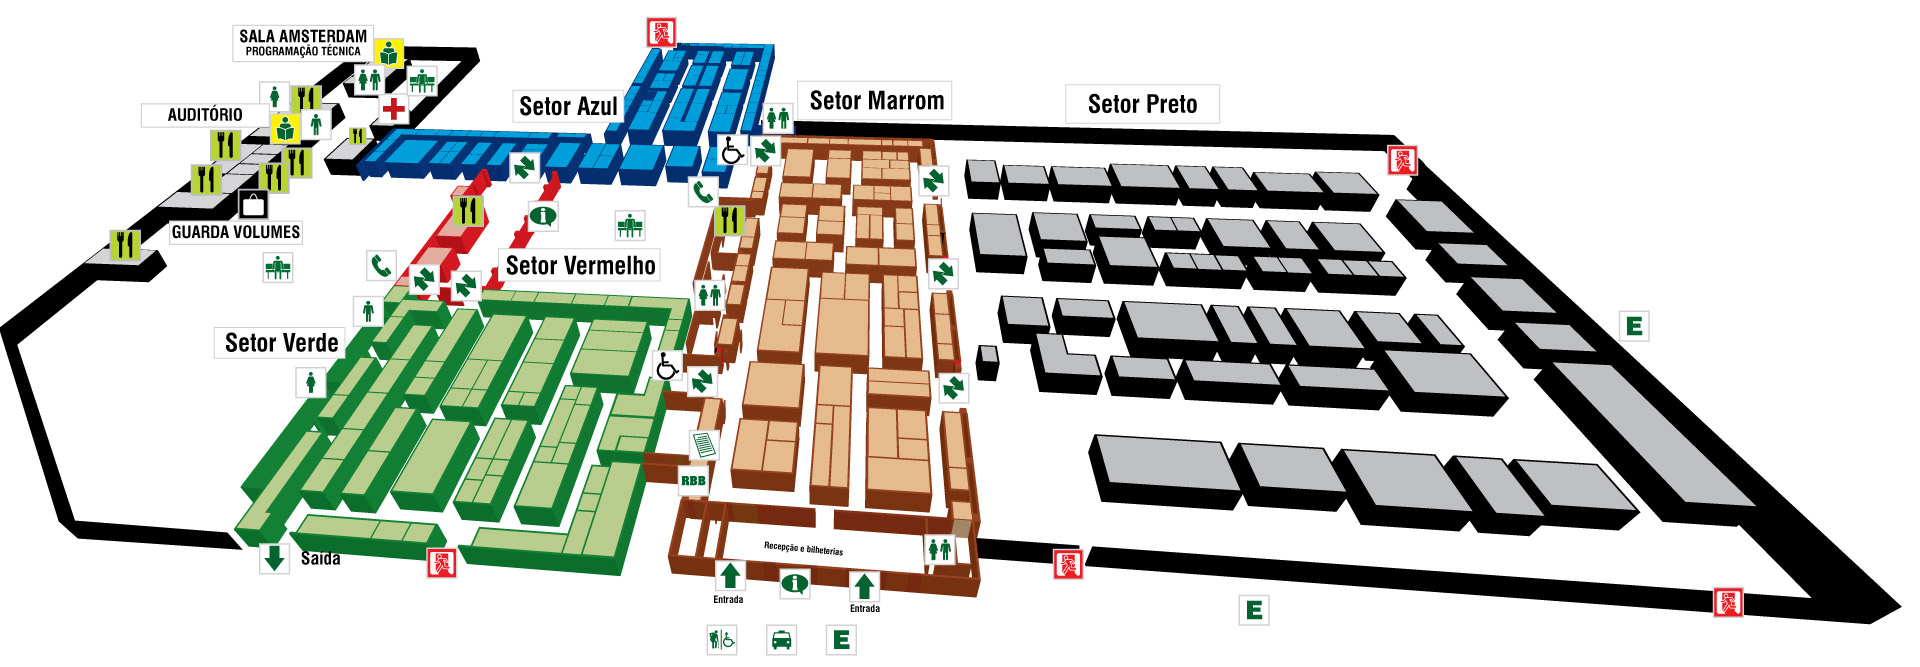 Hortitec Mapa do evento